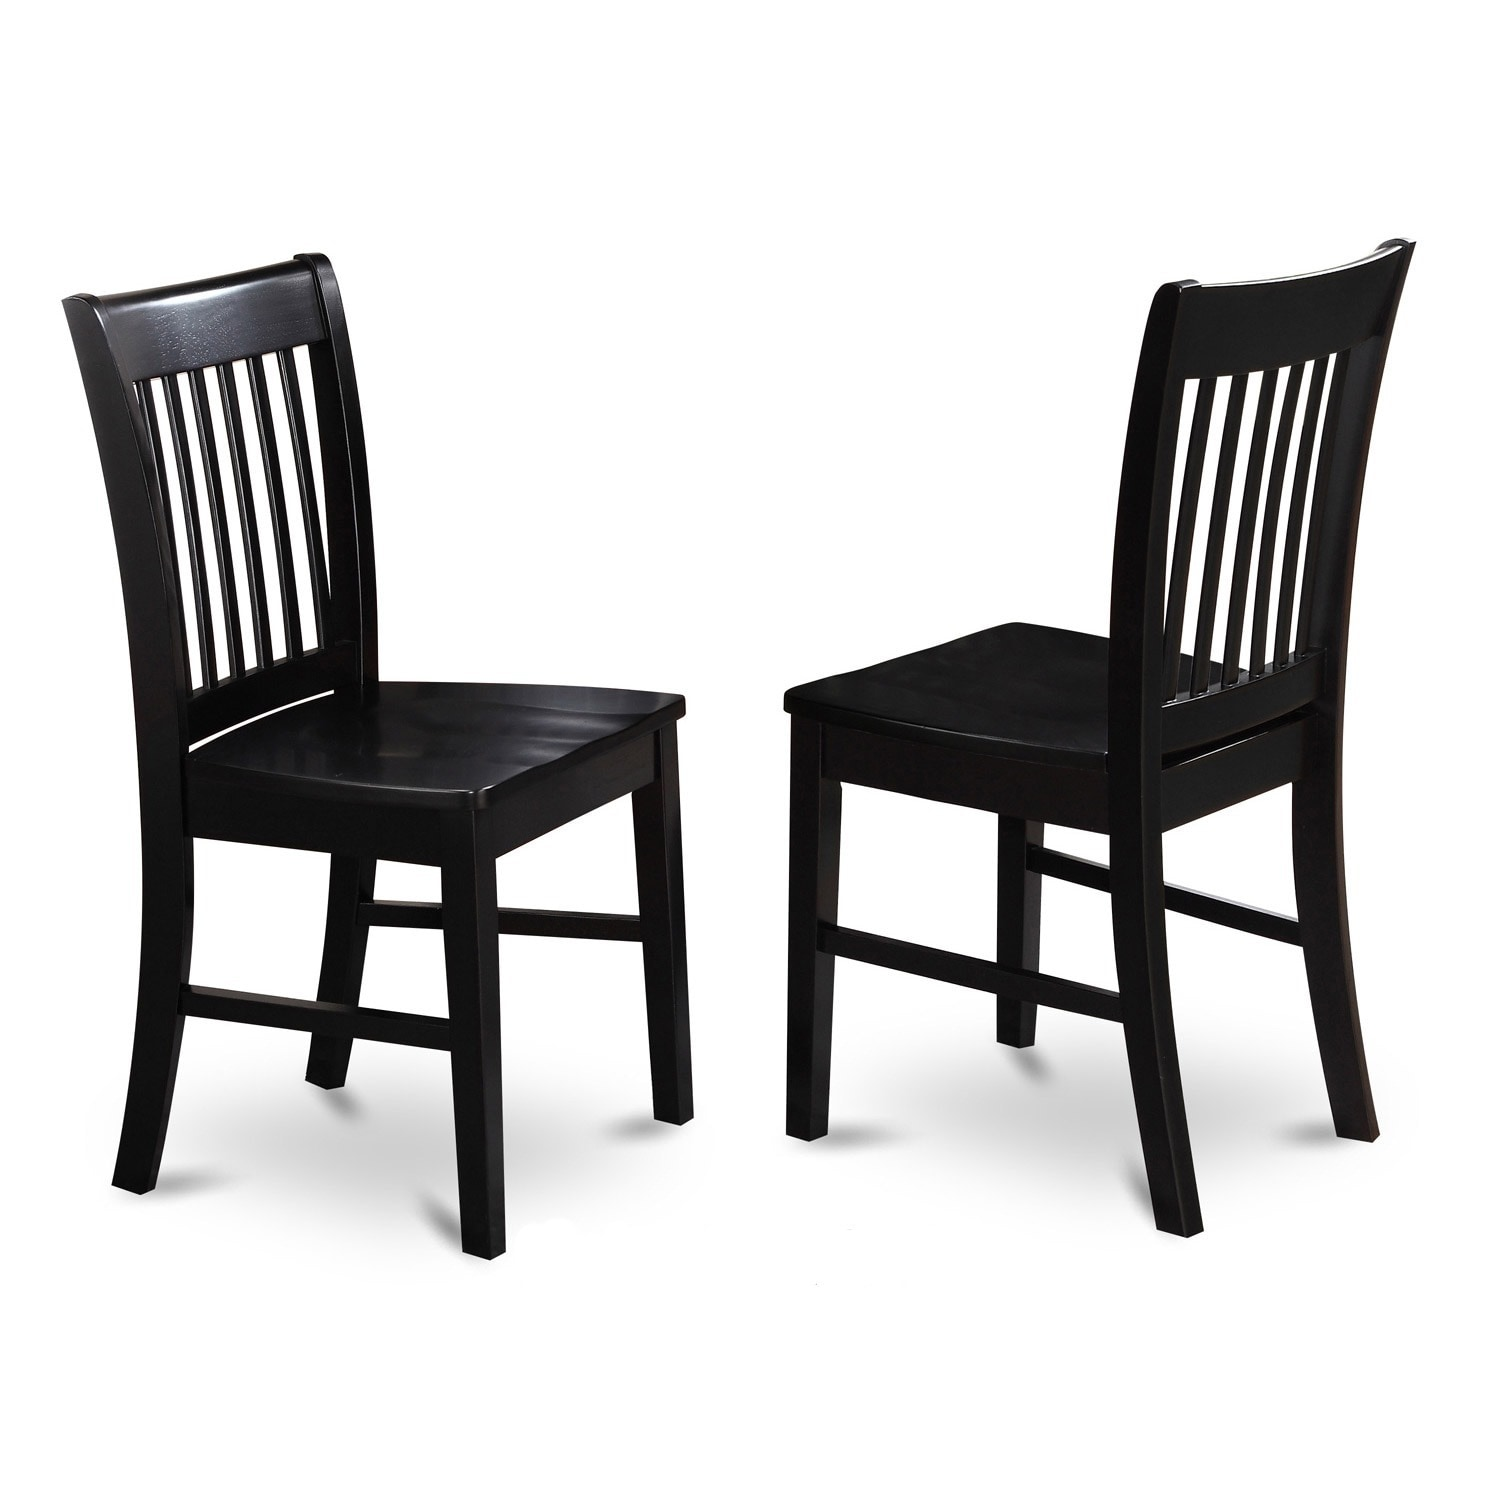 Copper Grove Cronewood Black Wooden Seat Dining Chair Set Of 2